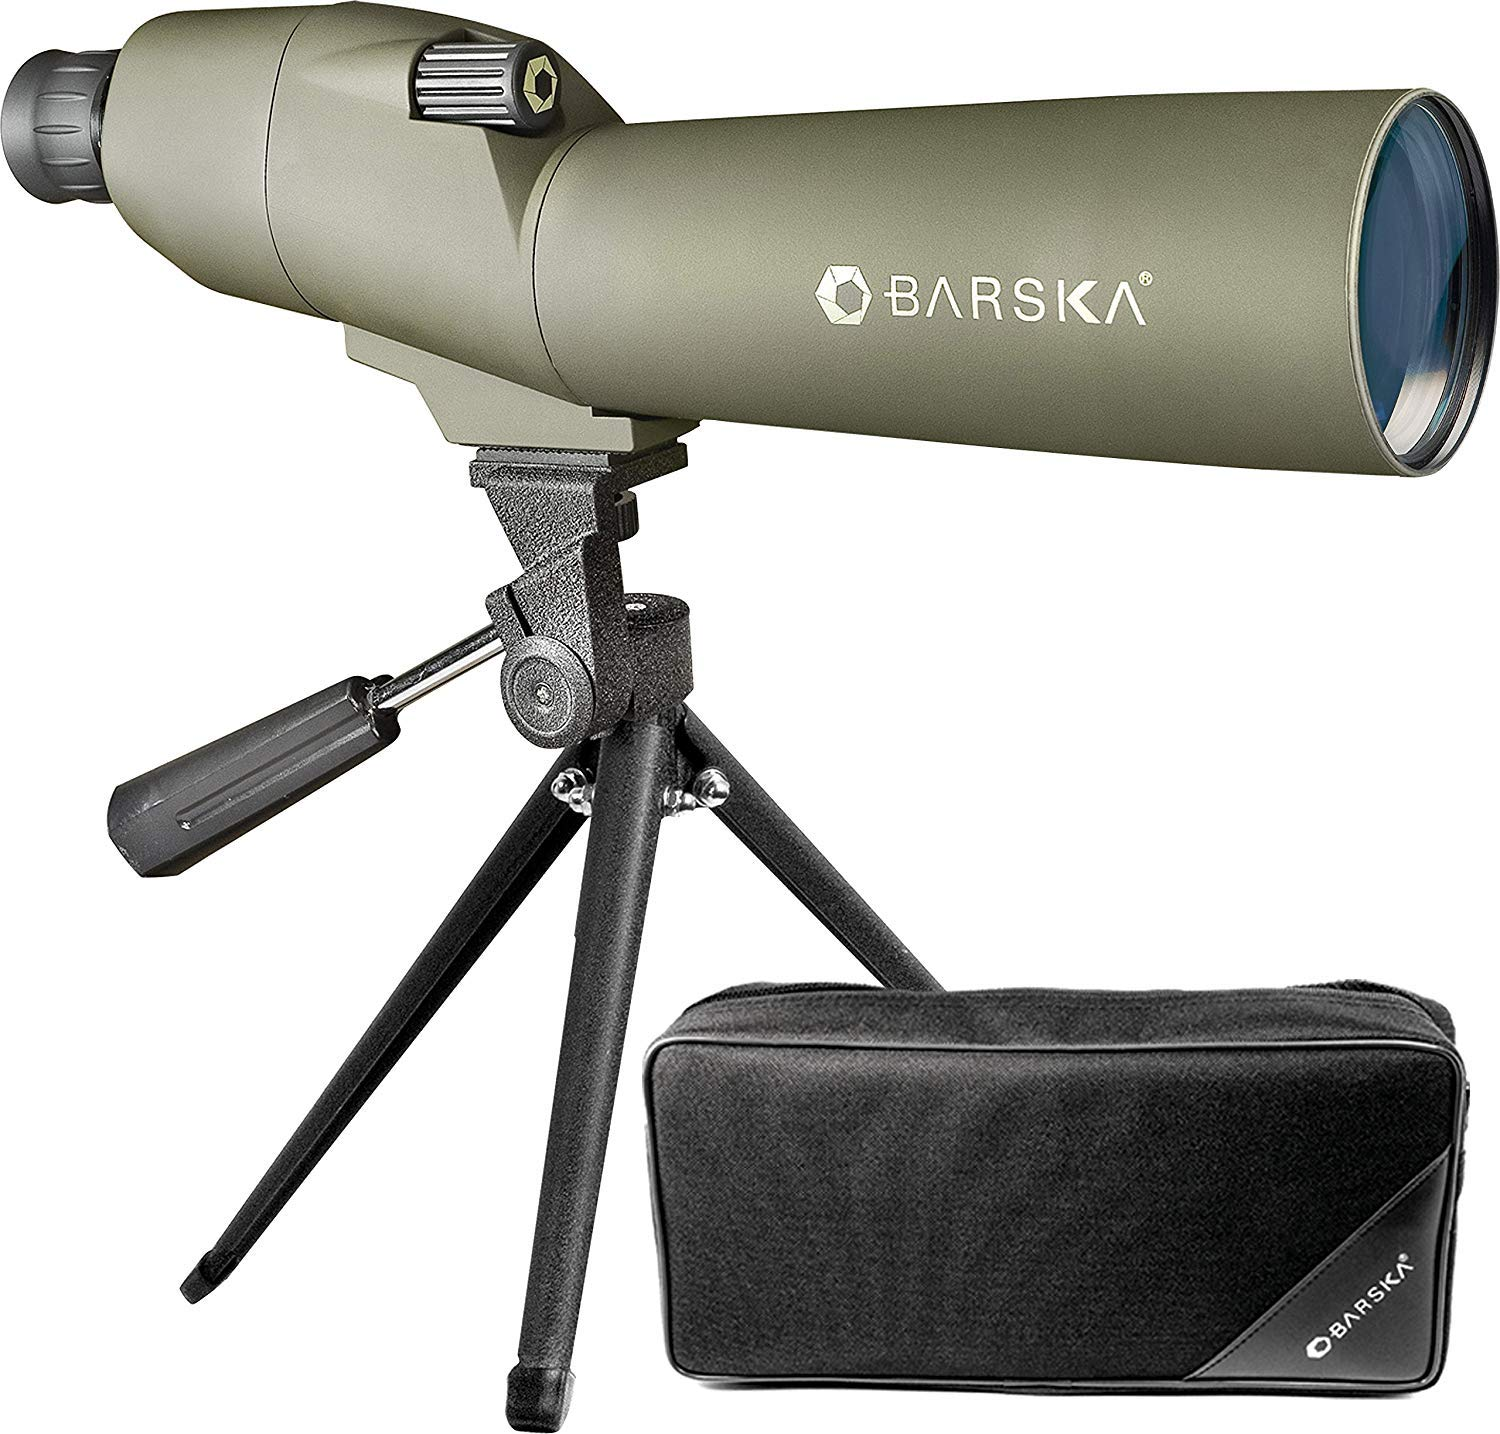 2.Barska 20-60x60mm WP Colorado Spotting Scope